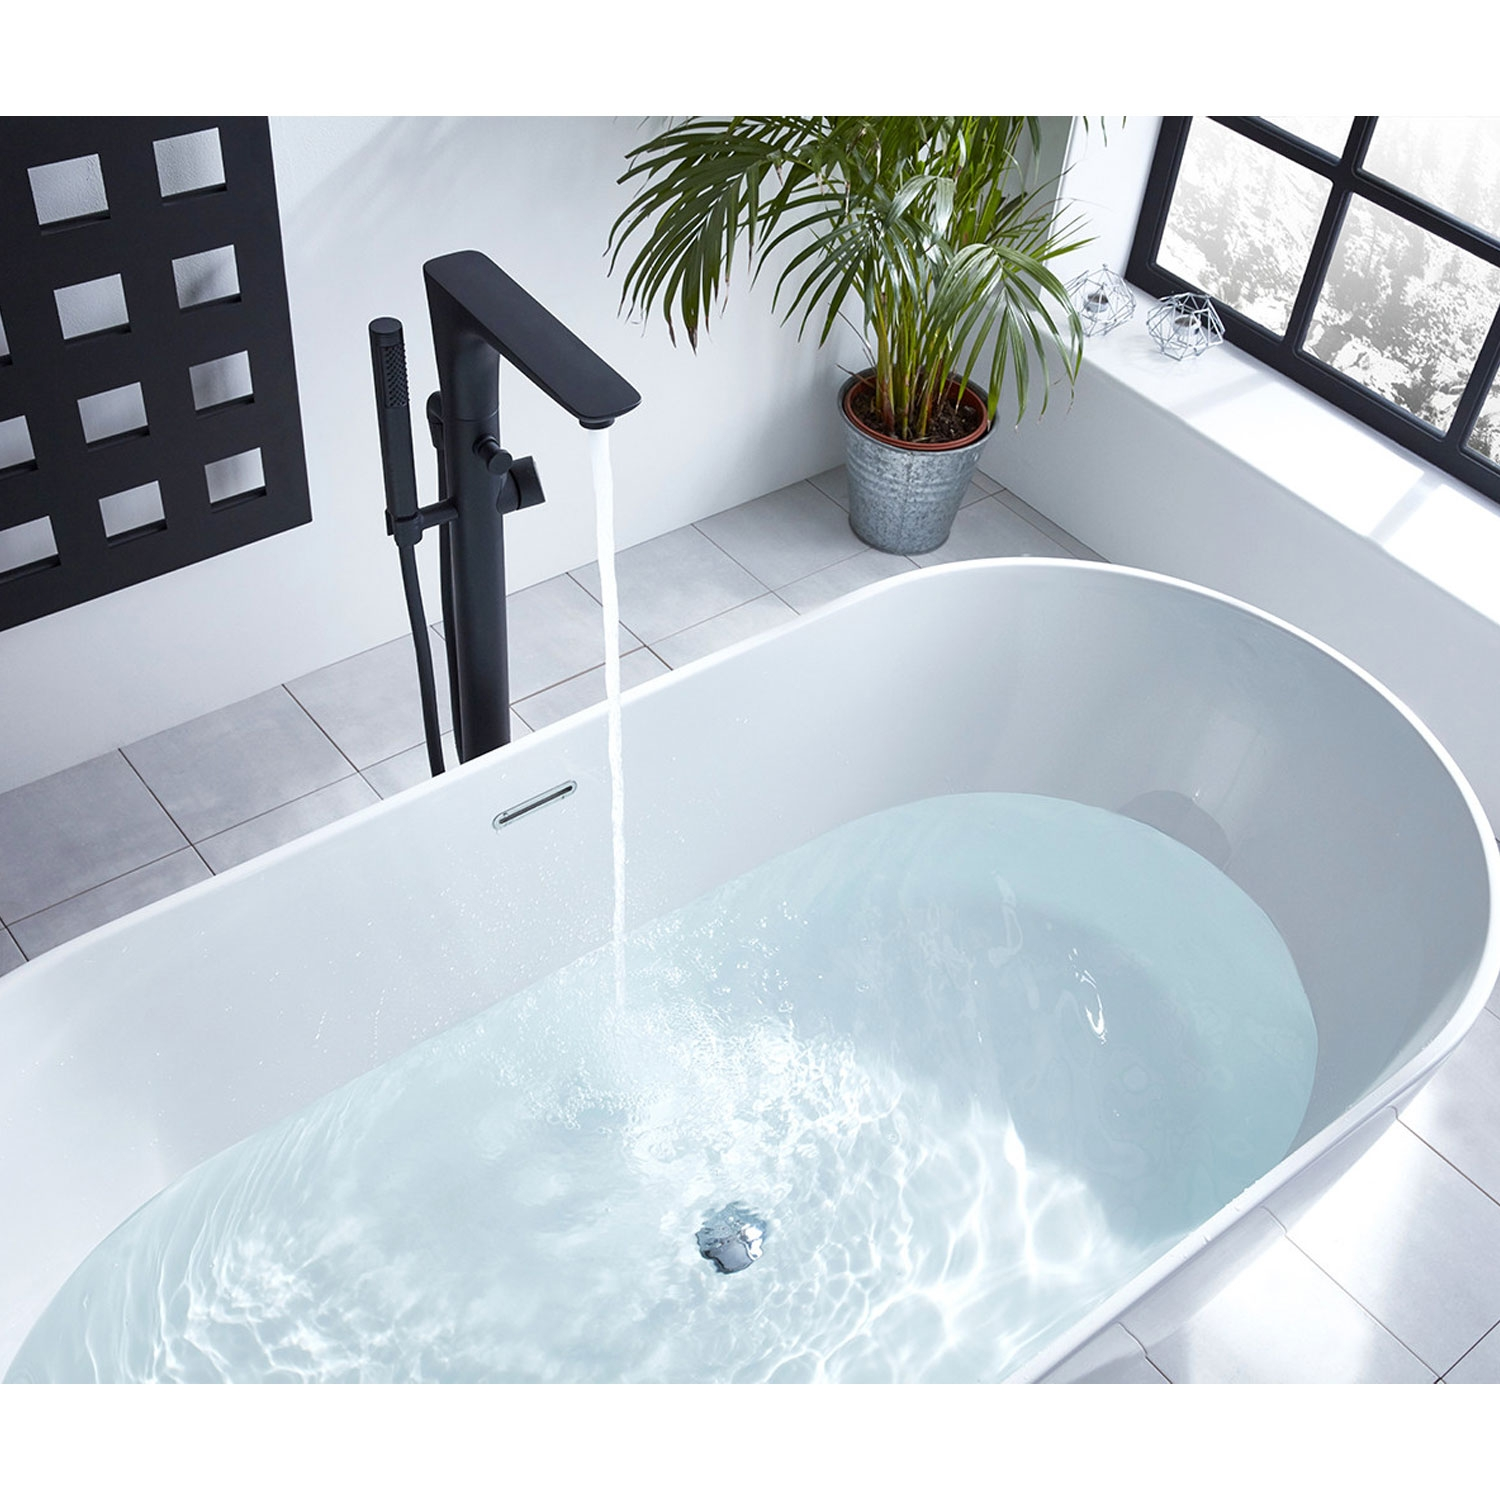 Verona Vibe Freestanding Bath Shower Mixer Tap with Shower Handset - Black-1